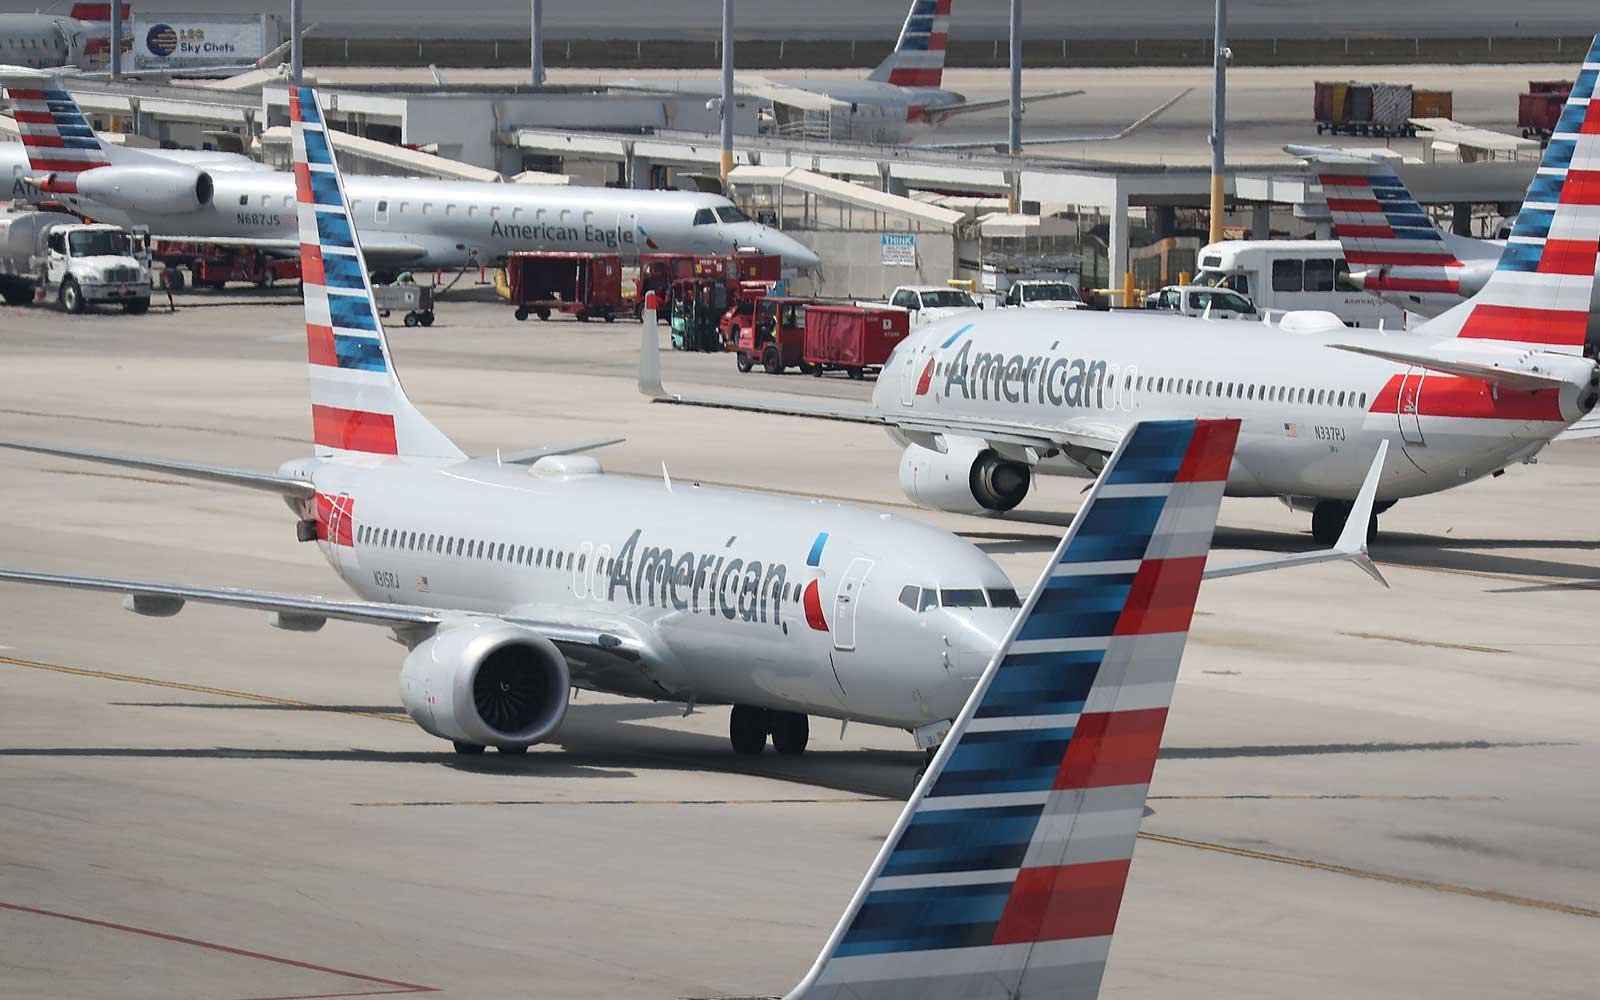 American Airlines Boeing 737 Max 8 planes